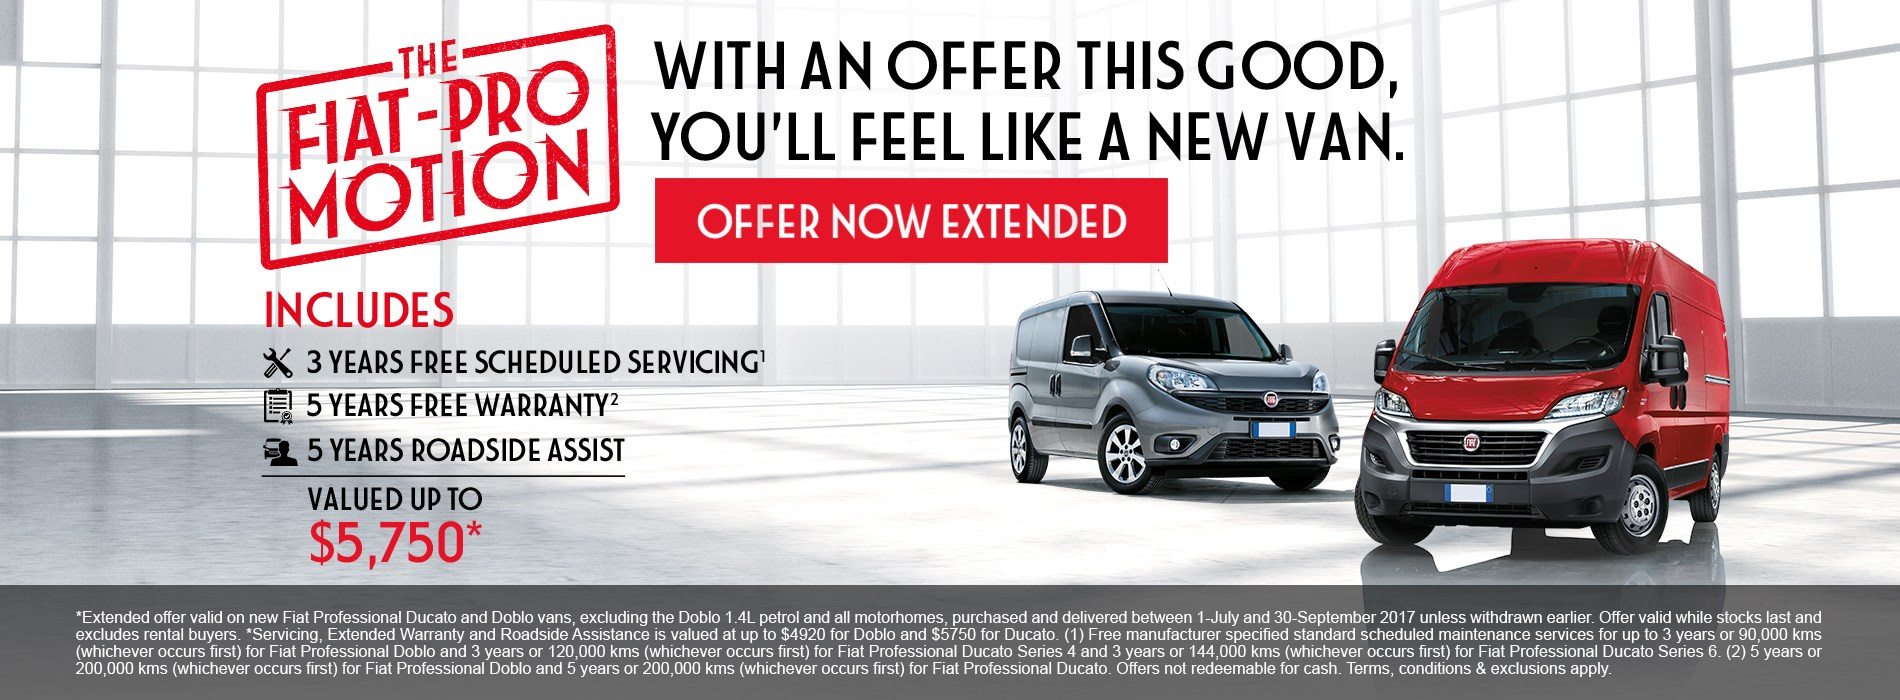 Fiat Professional 3 years free scheduled servicing offer